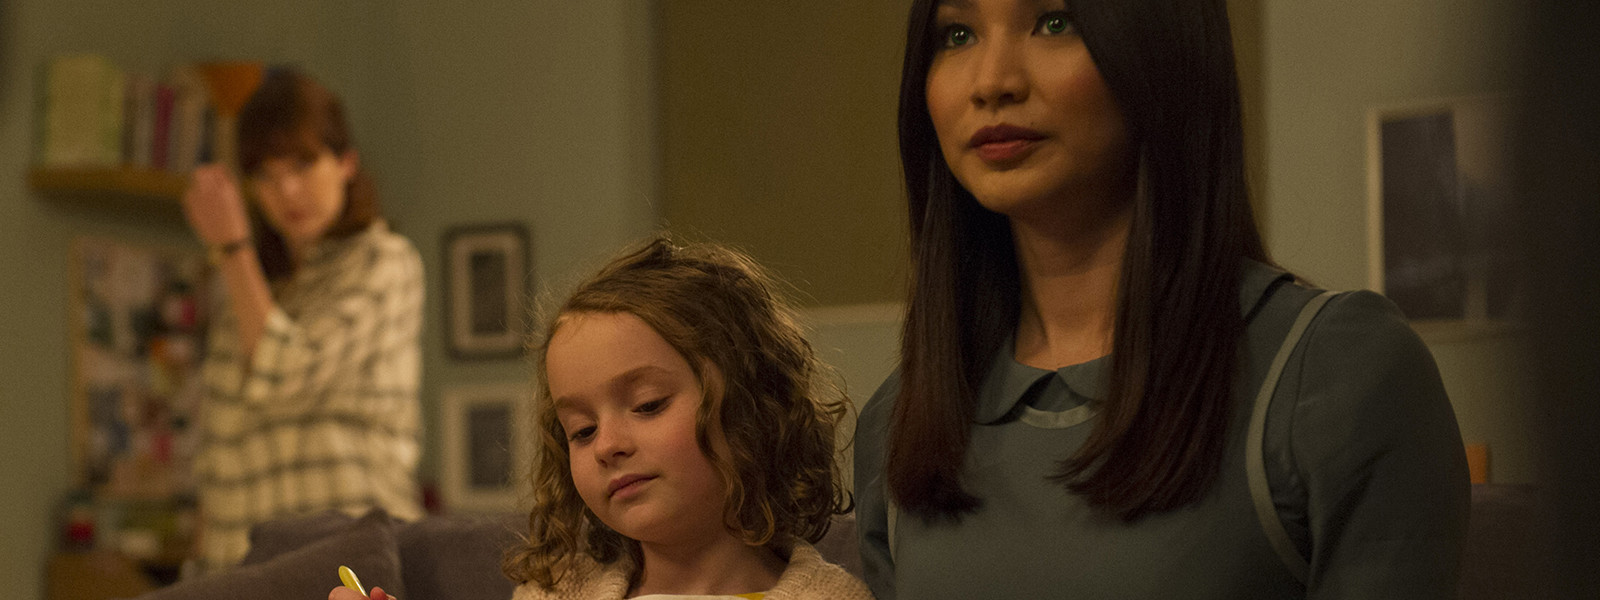 humans-episode-101-anita-chan-laura-parkinson-sophie-davies-800×600